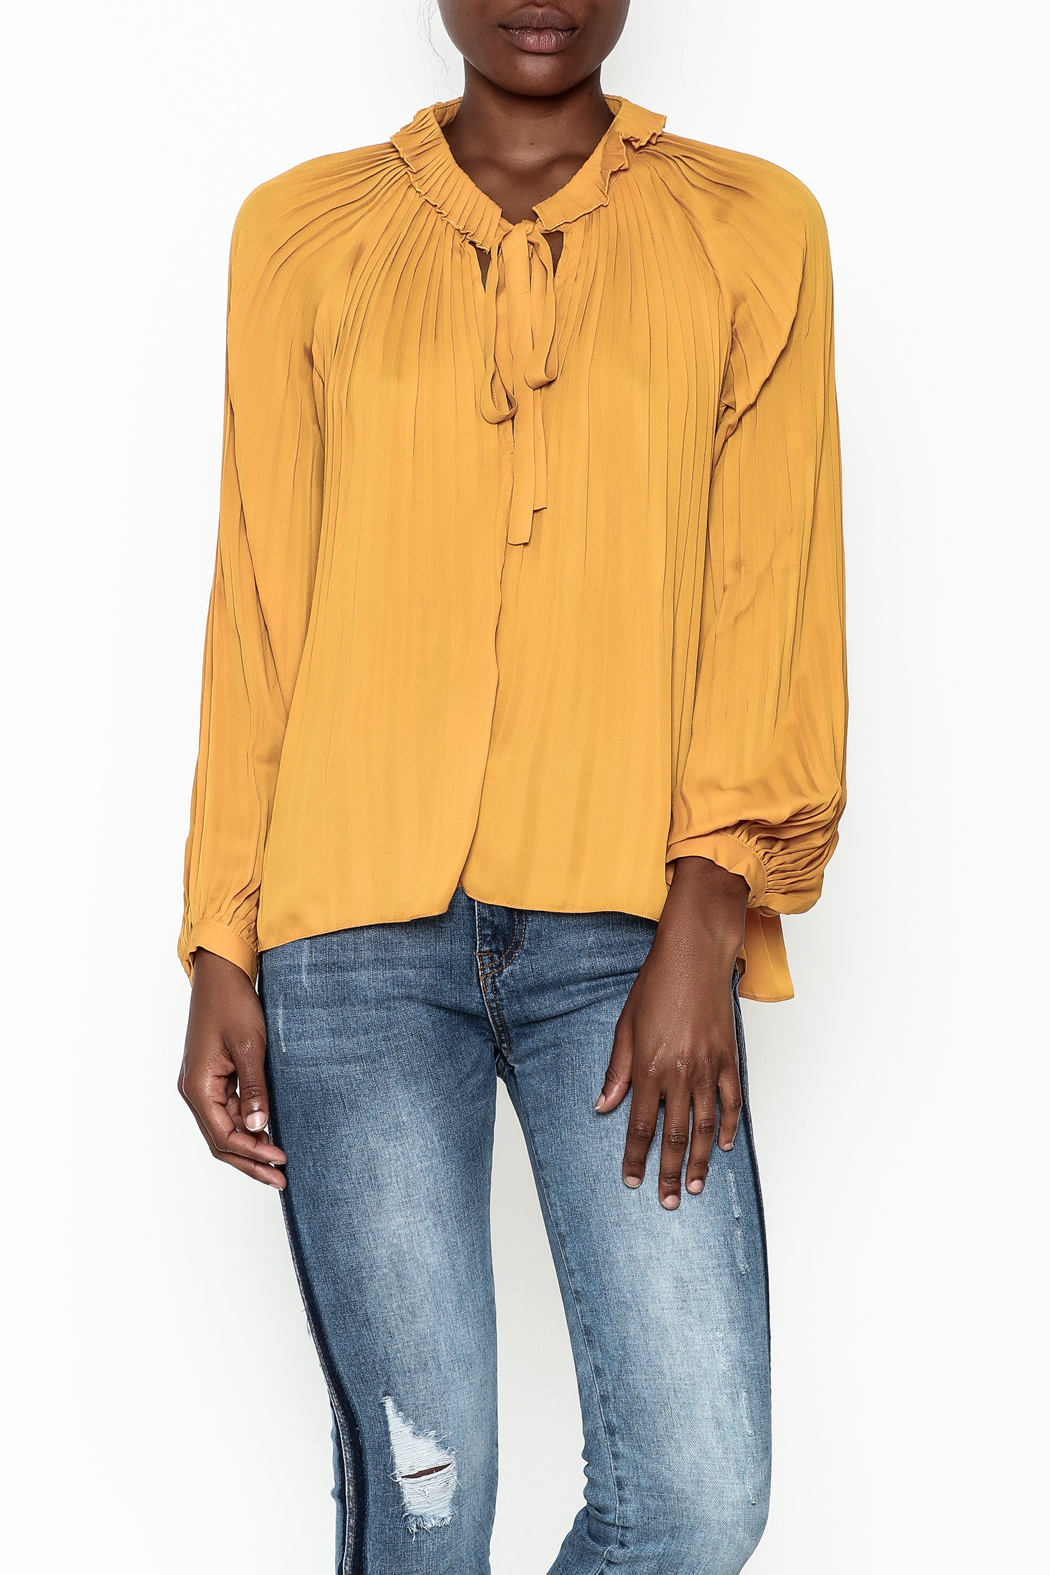 Lucy Paris Olivia Pleated Blouse - Main Image